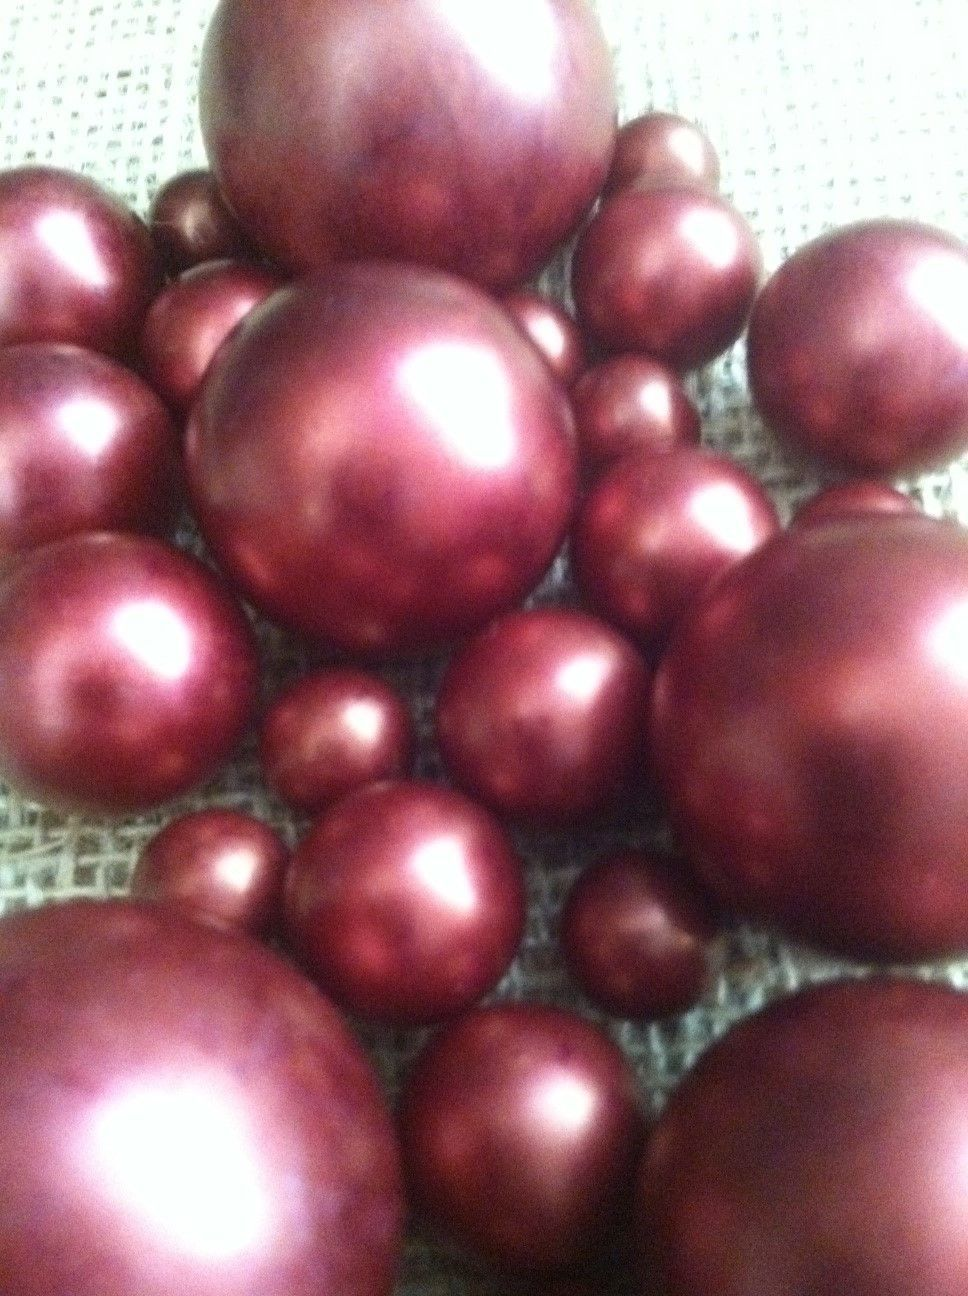 Burgundy pearls for floating pearl centerpieces jumbo pearls vase burgundy pearls for floating pearl centerpieces jumbo pearls vase fillers scatters confetti reviewsmspy